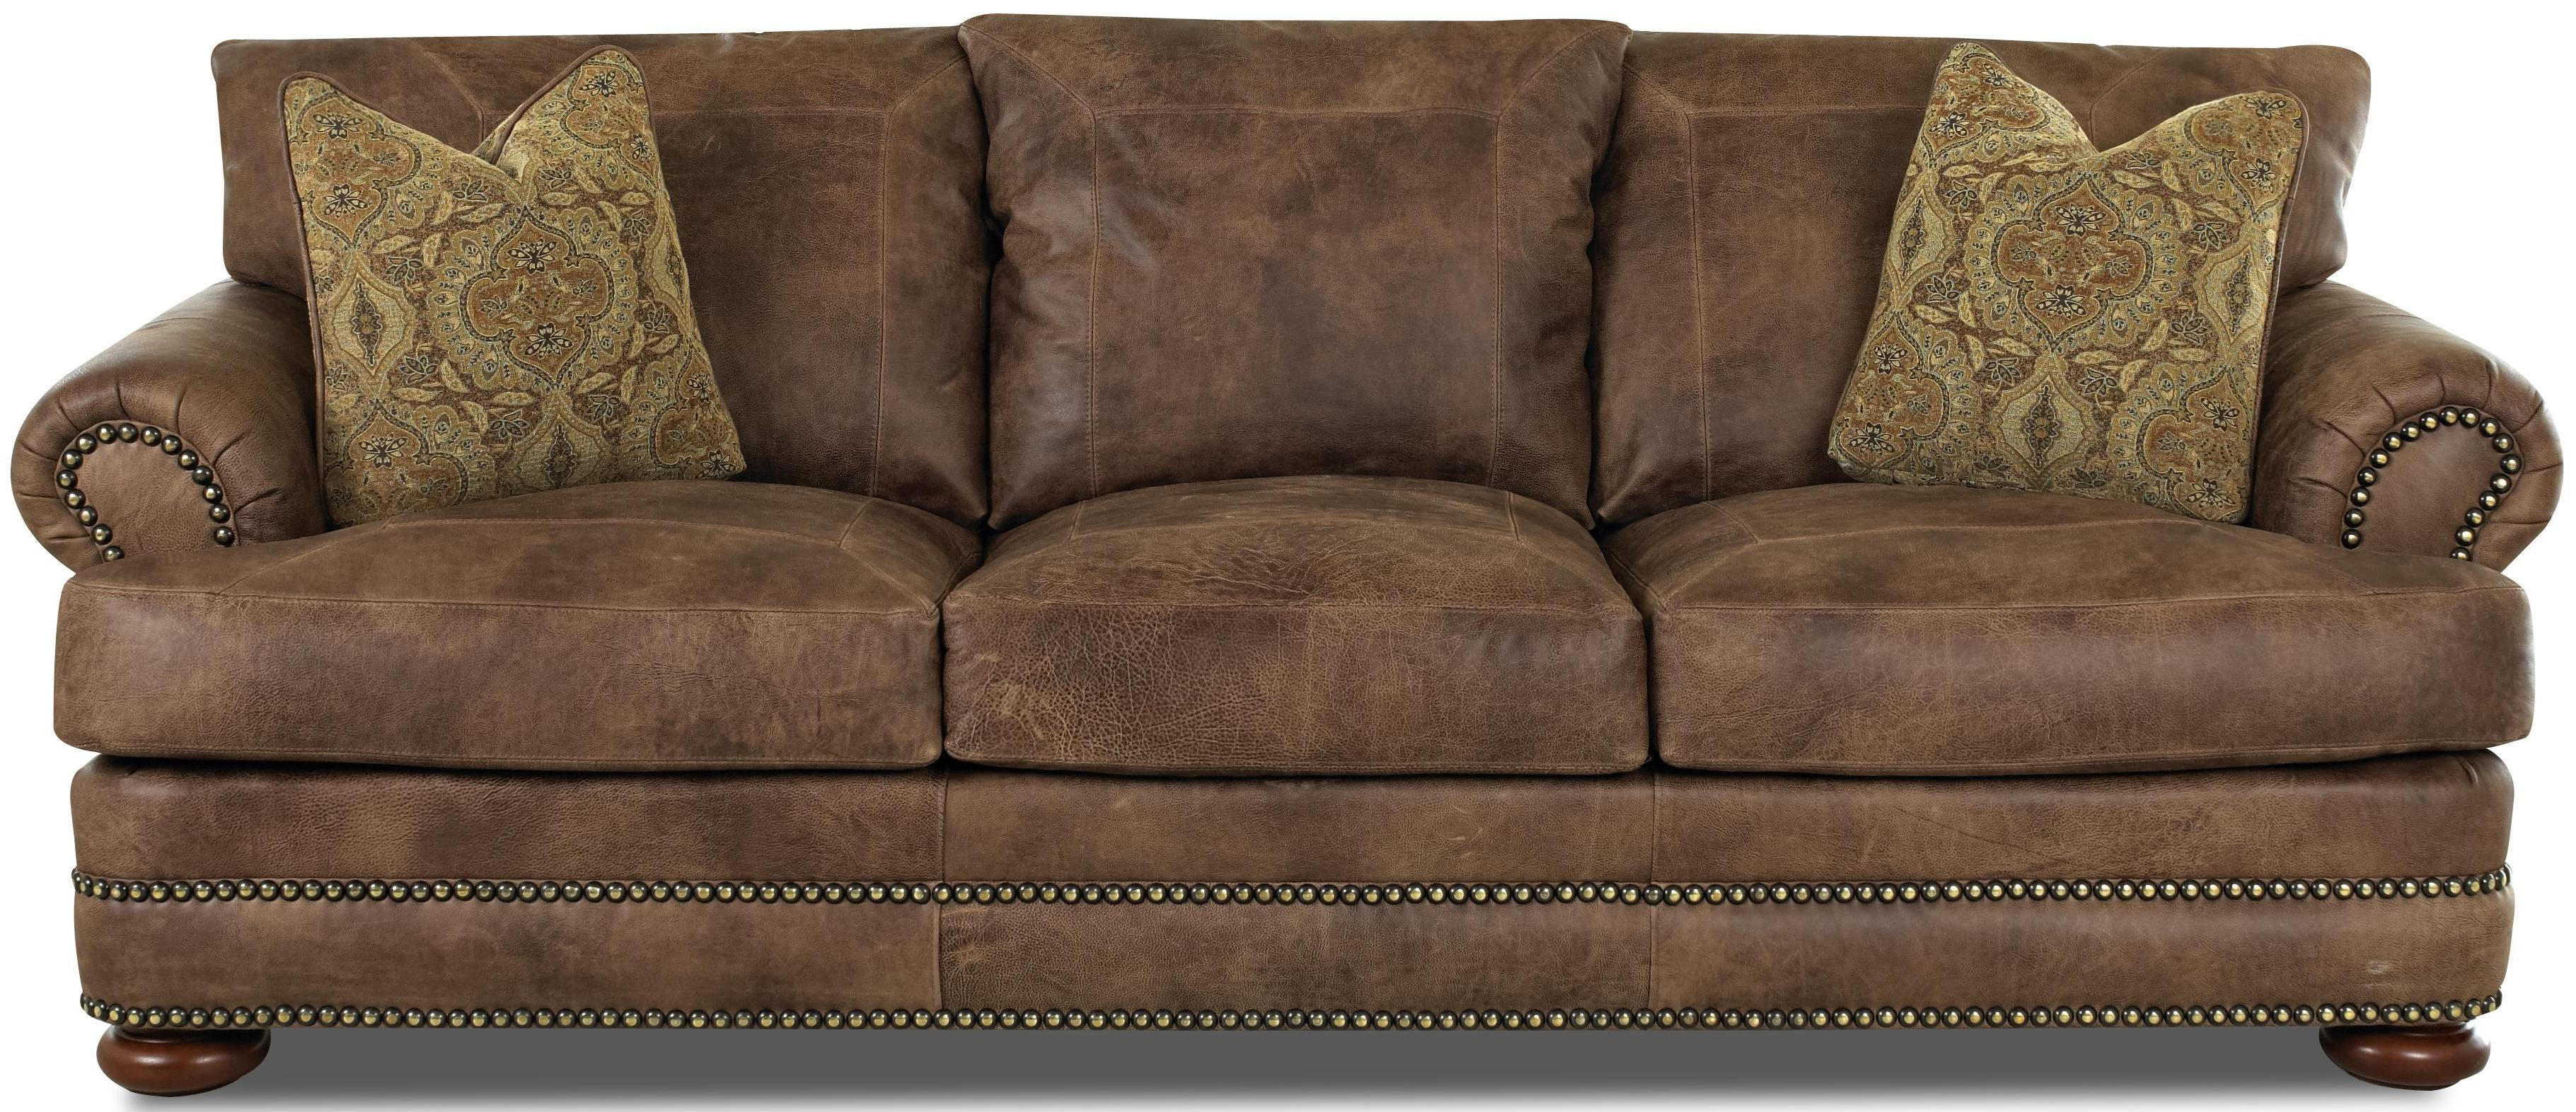 Montezuma Leather Sofa by Klaussner at Rooms for Less